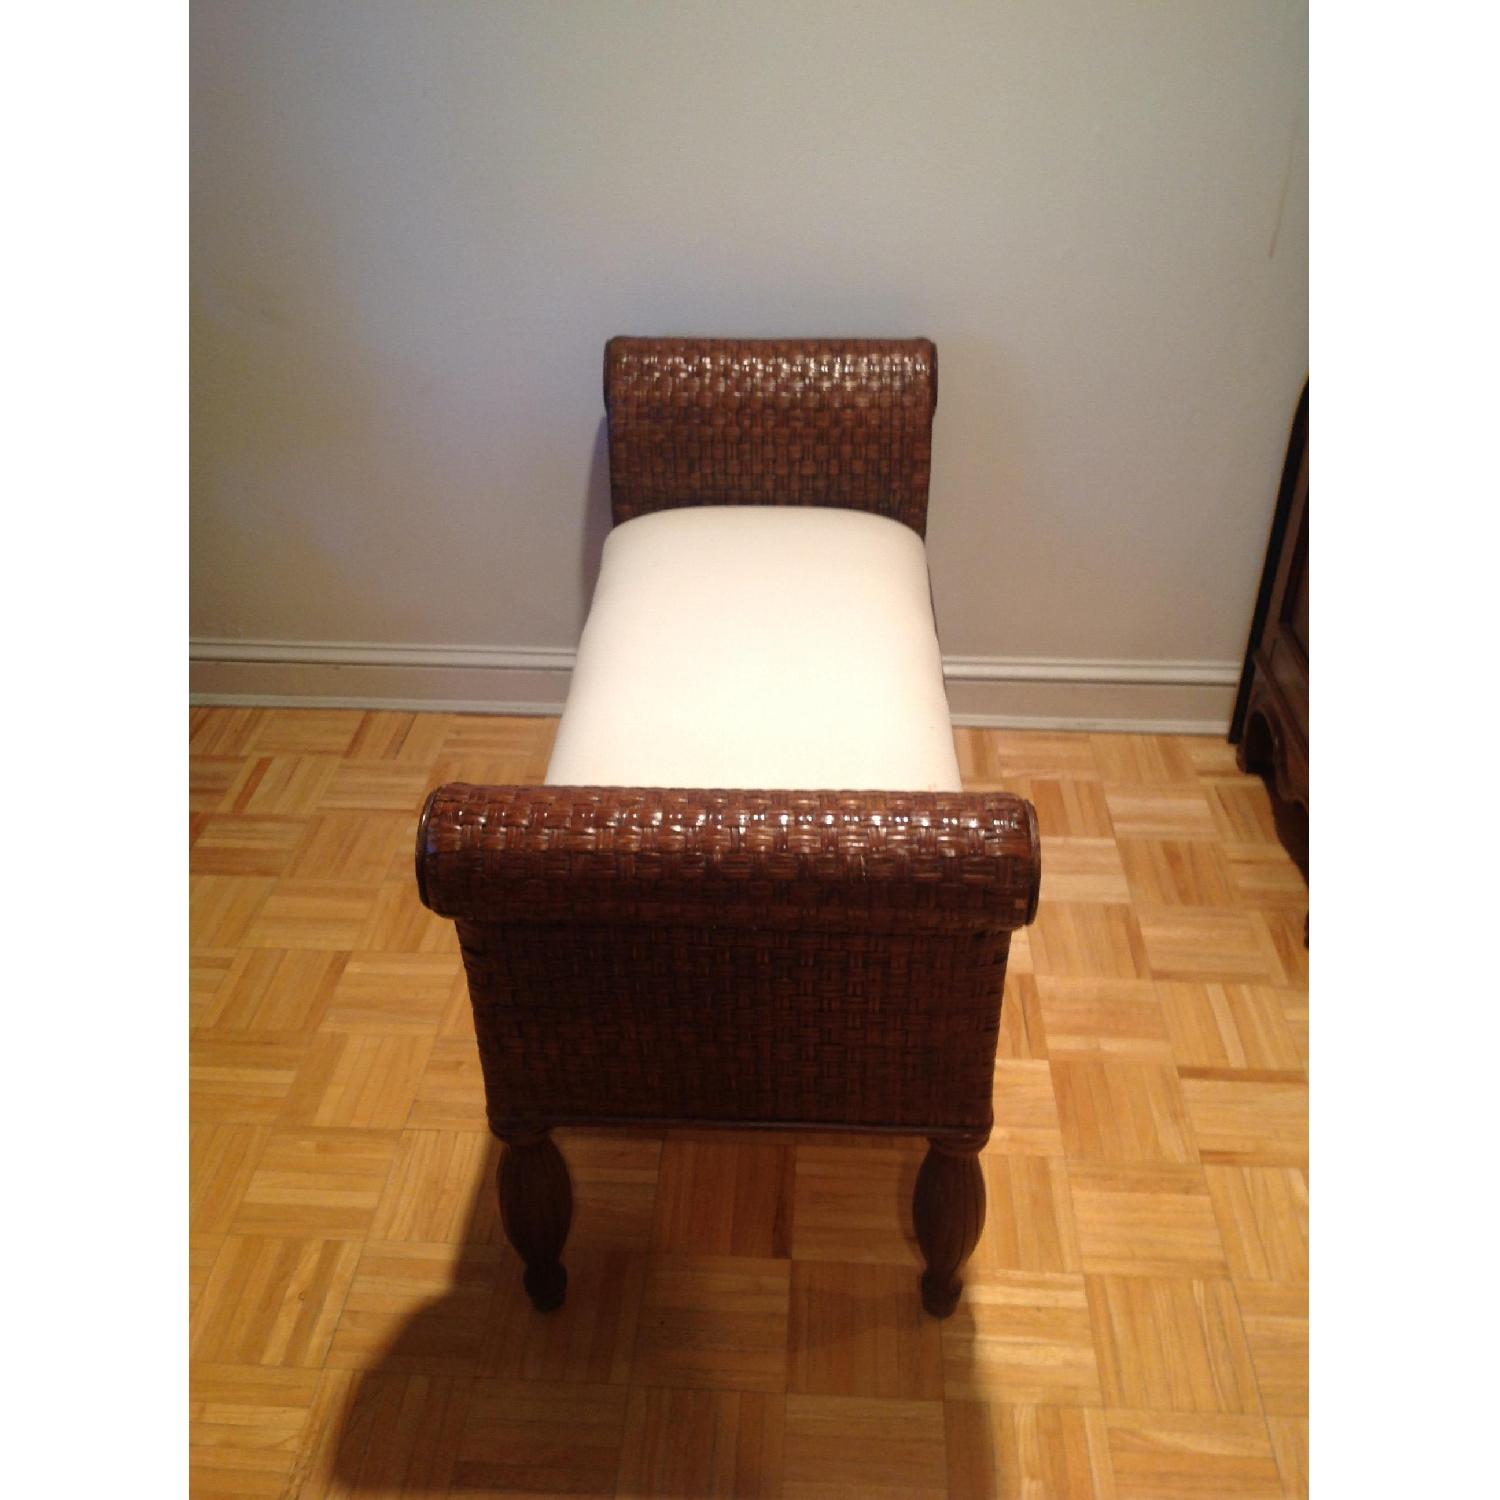 Ethan Allen Wicker Bench - image-1